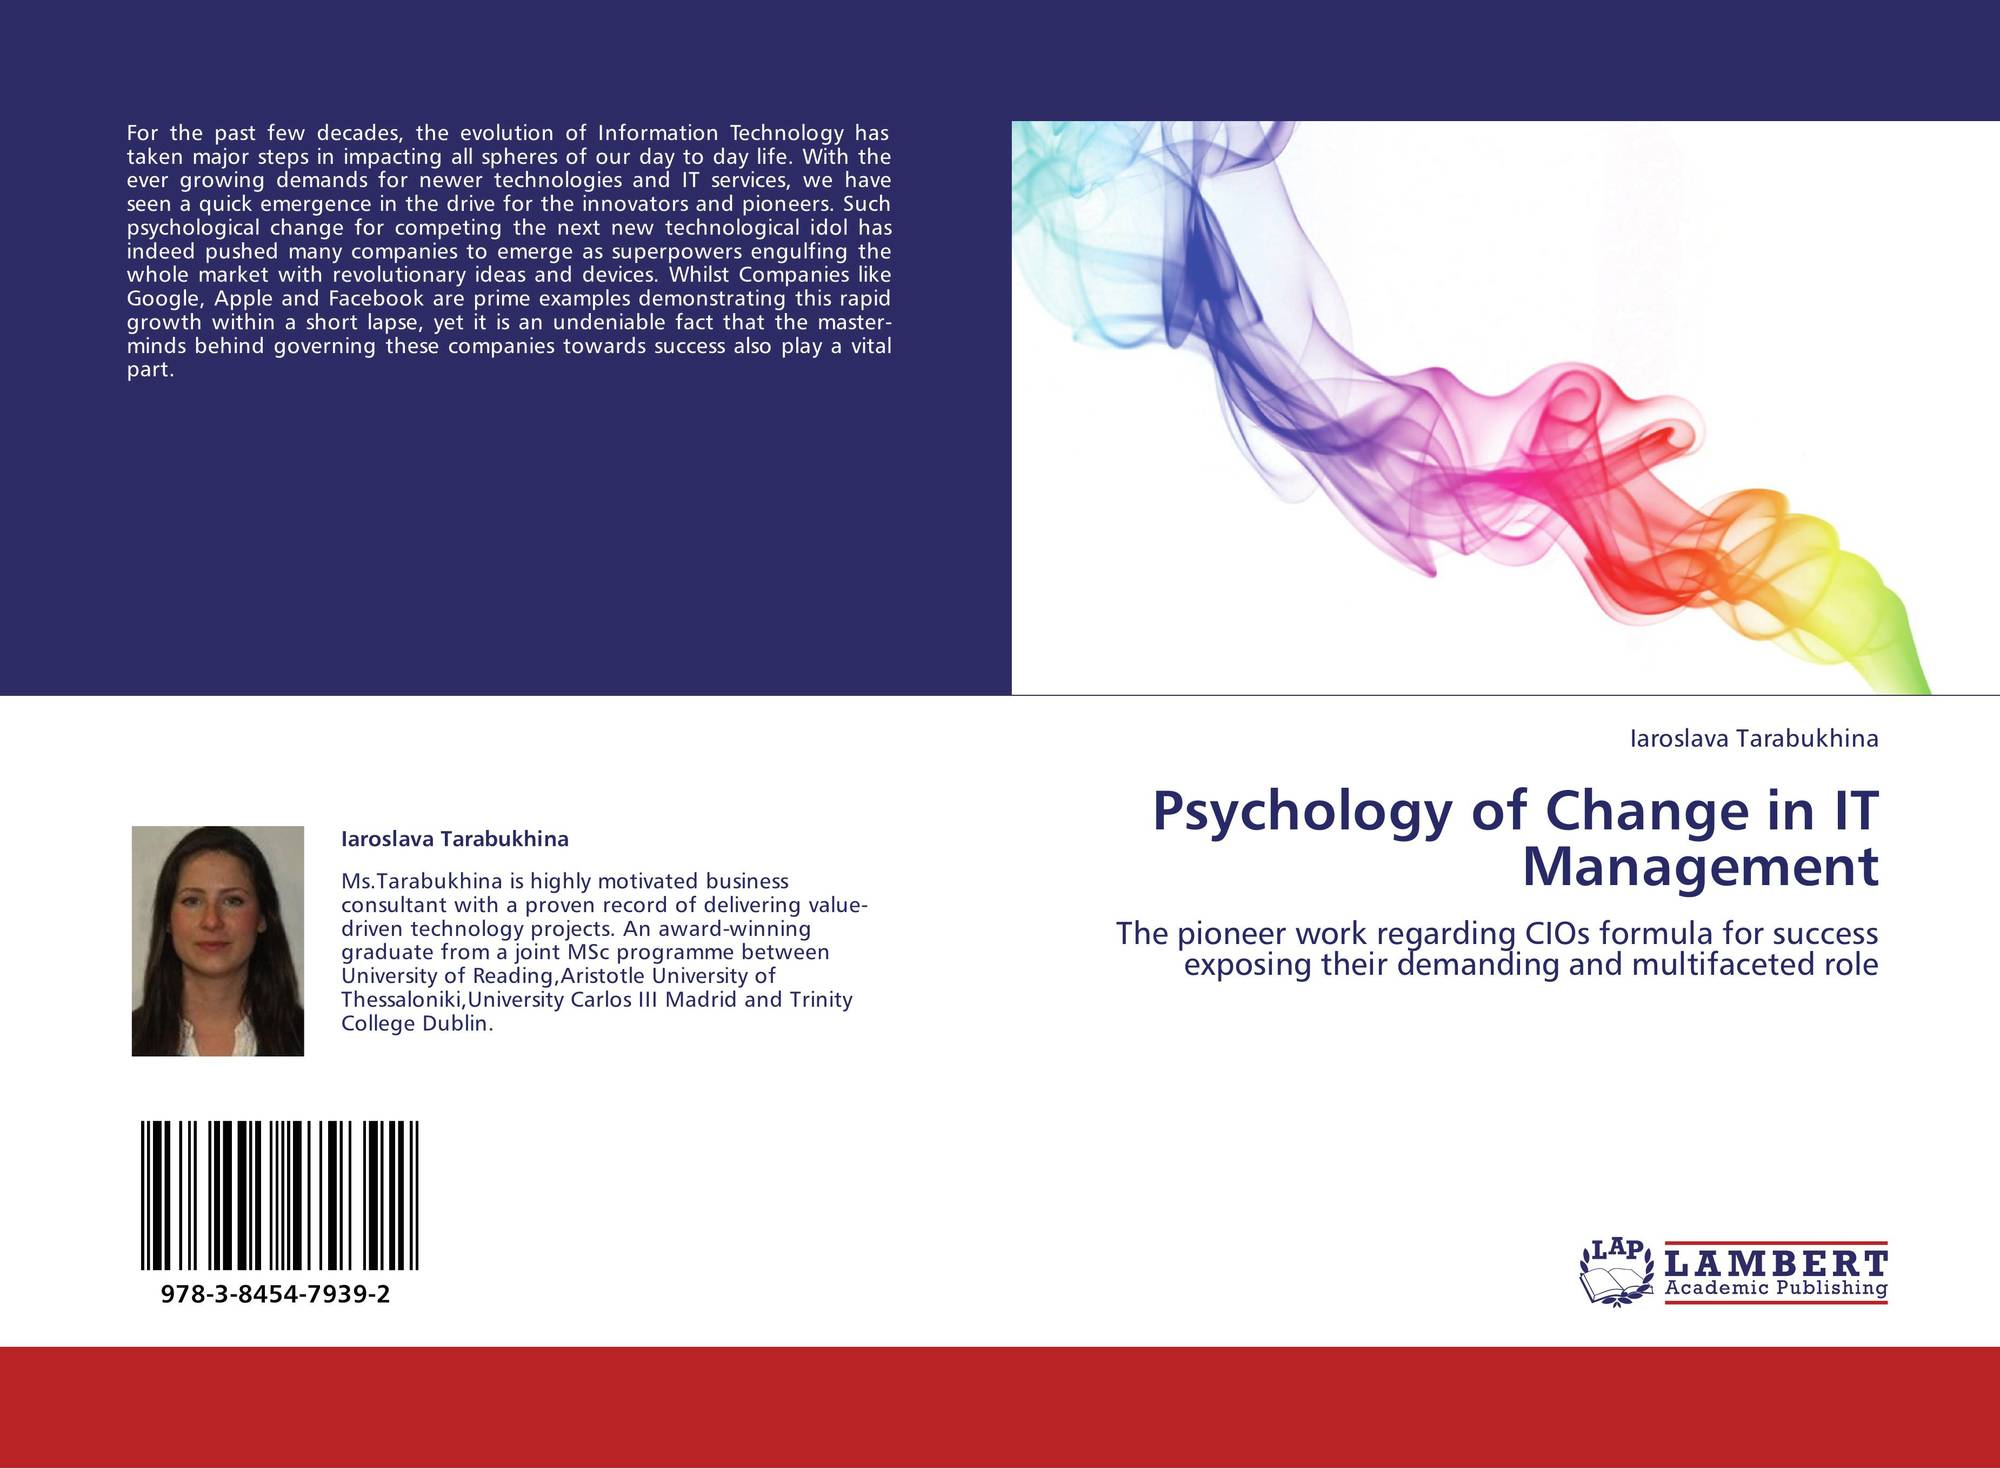 neurobiological changes resulting from psychotherapy Behavioural changes in response to uncertainty about a potential future threat  uncertainty and anticipation in anxiety: an integrated neurobiological and psychological perspective dan w grupe and jack b nitschke abstract | uncertainty about a possible future threat disrupts our ability to avoid it or to mitigate its negative.